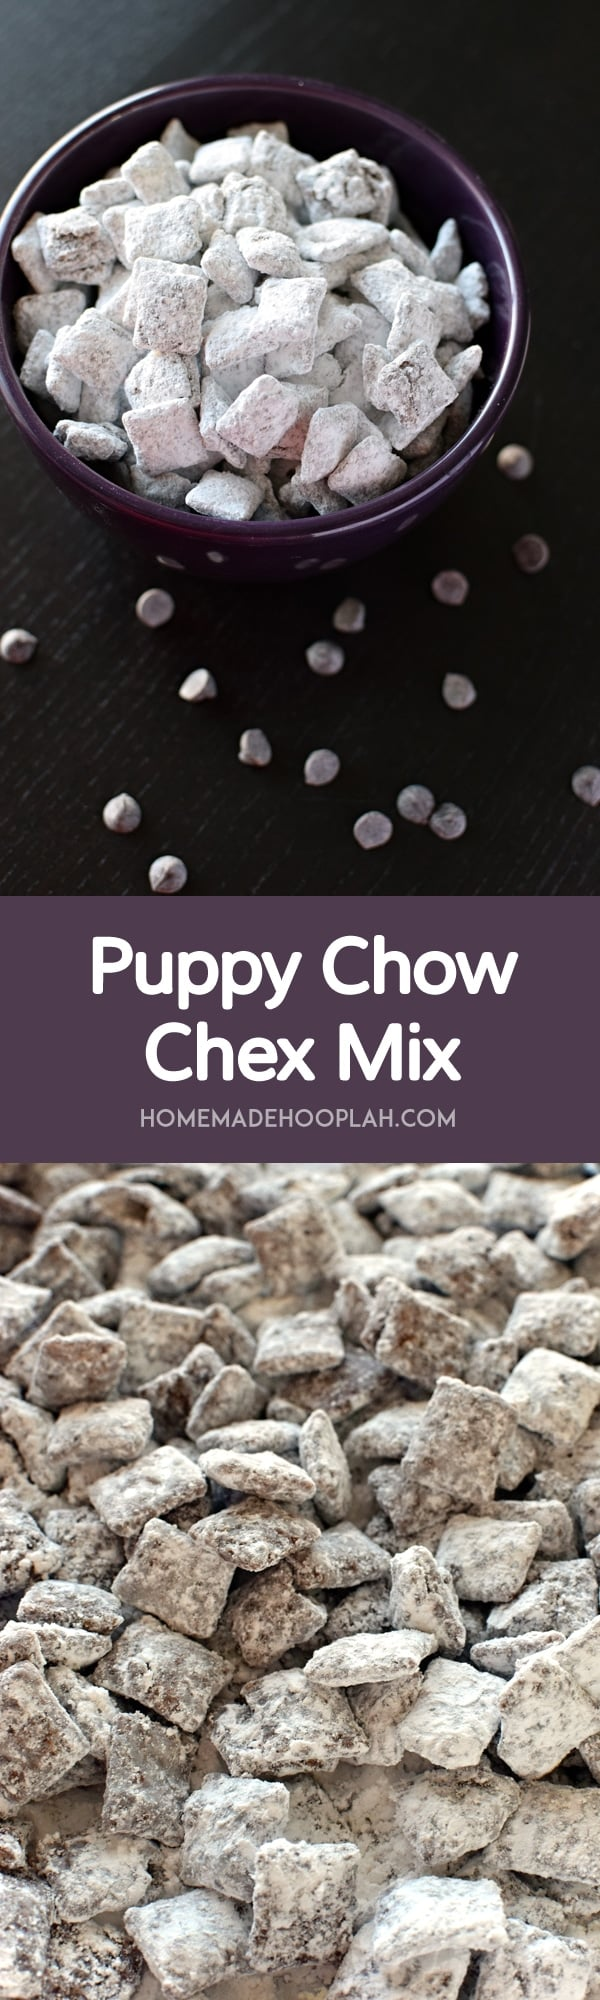 Puppy Chow Chex Mix! Crunchy Chex cereal covered in chocolate, peanut butter, and sugar. It's the classic winter snack food (and perfect for gifting, too)! | HomemadeHooplah.com